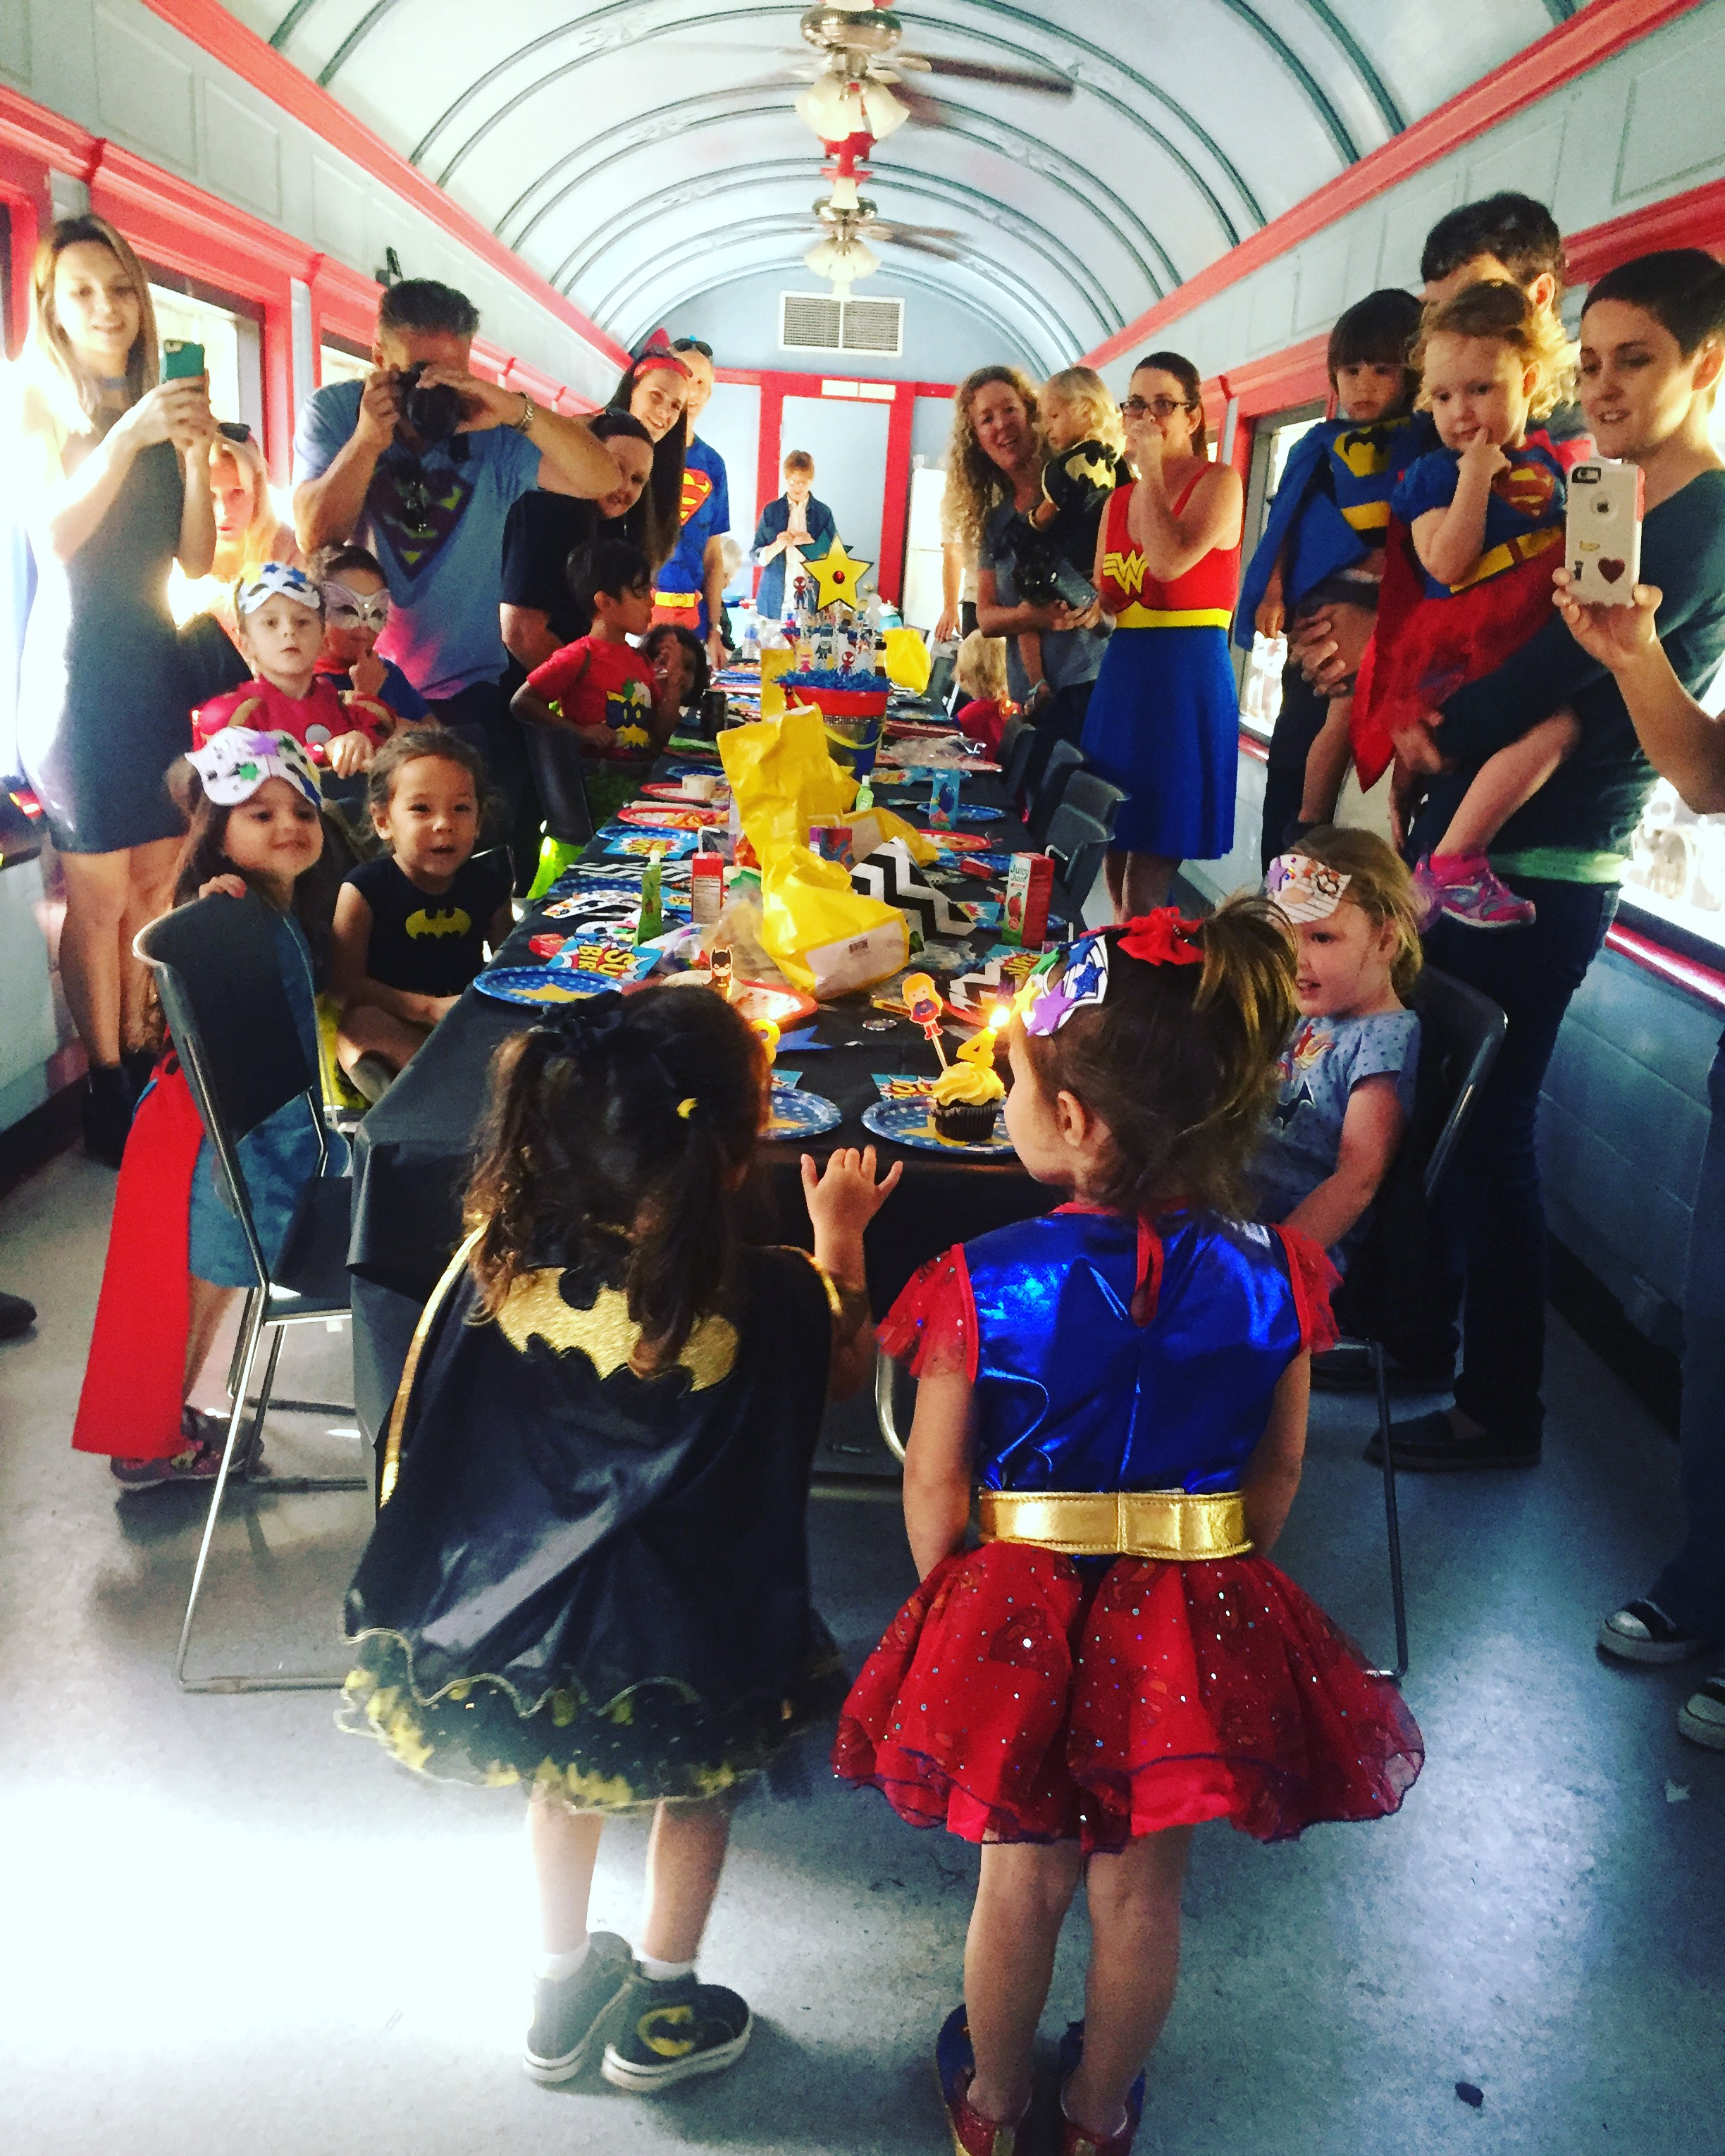 Superhero Party On An Antique Train At Travel Town In Griffith Park LA